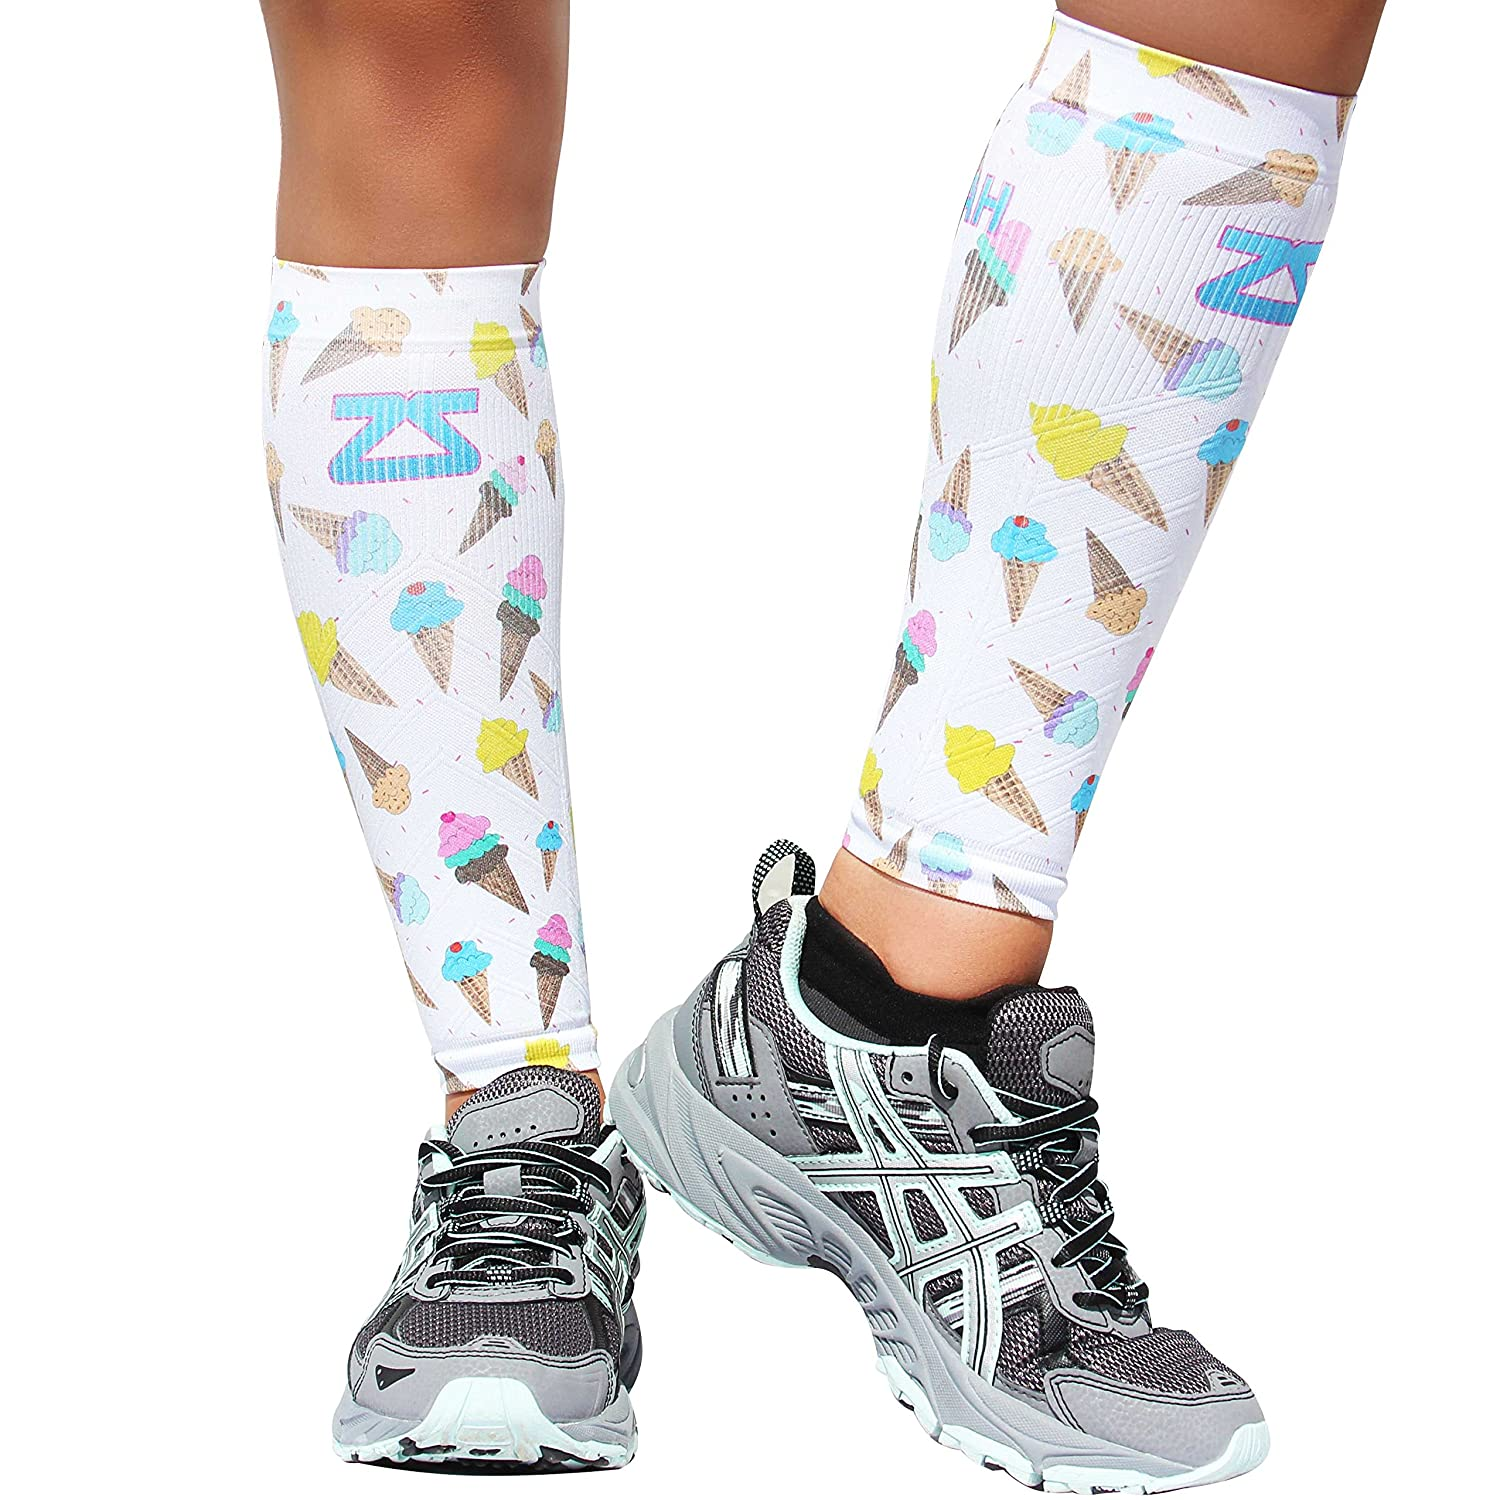 Zensah Compression Leg Sleeves – Helps Shin Splints, Leg Sleeves for Running 6055